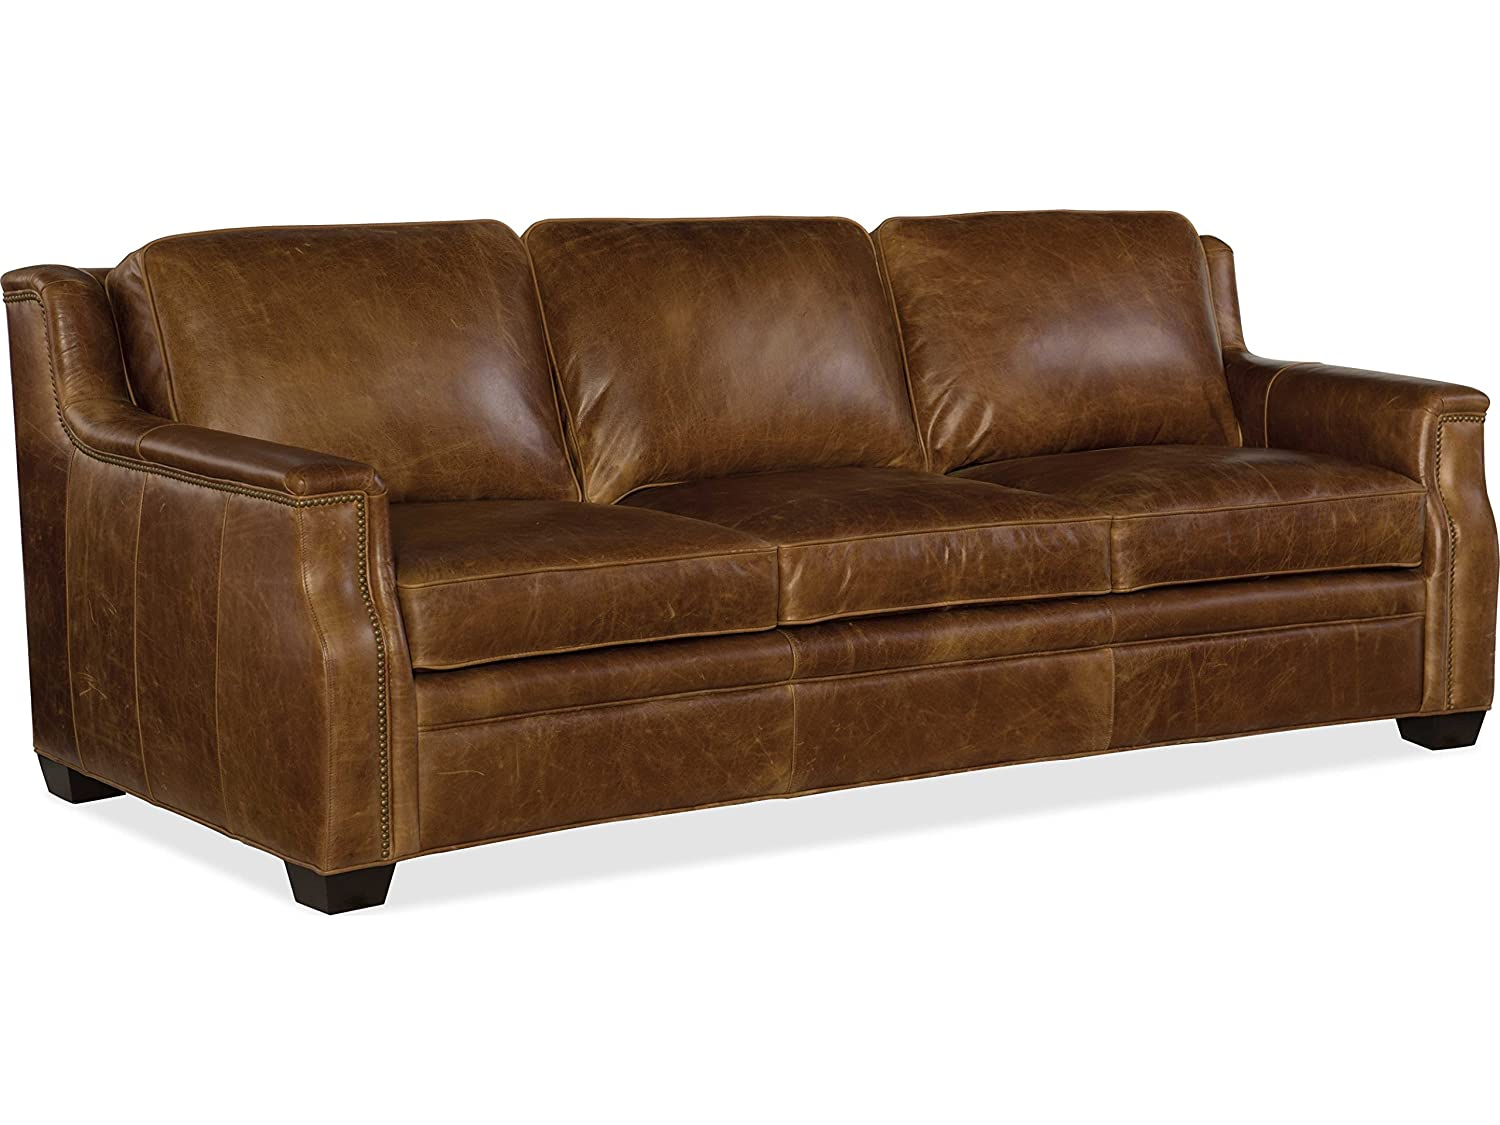 Amazon.com: Hooker Furniture Yates Leather Sofa in Buckaroo Colt ...